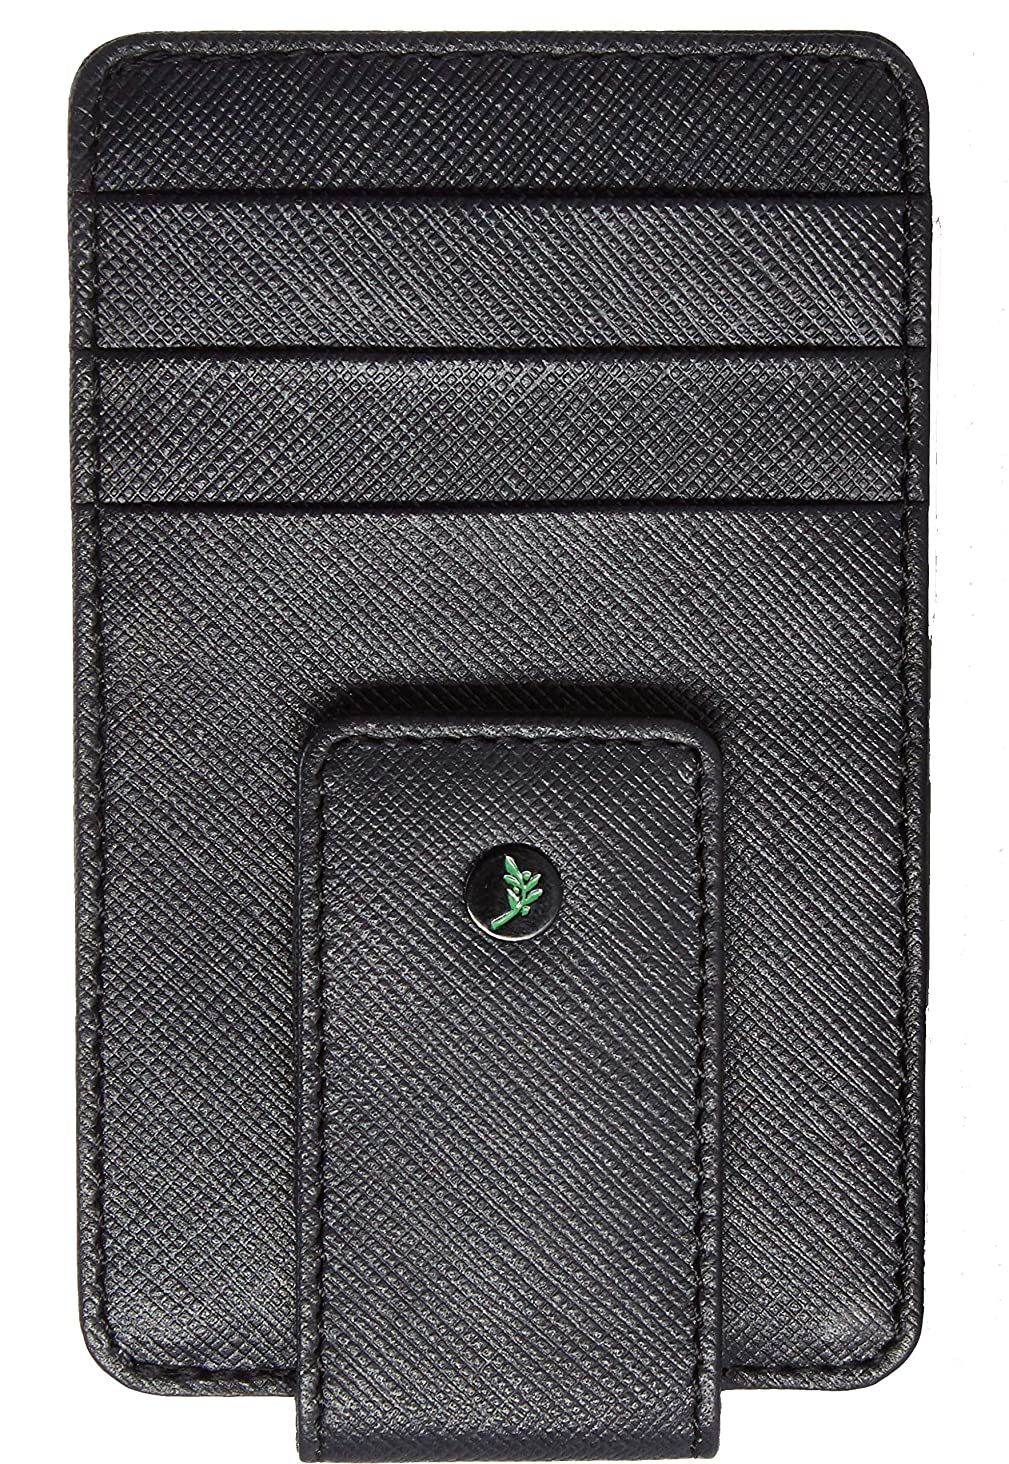 AULIV Full Grain Leather Magnetic Front Pocket Money Clip Wallet RFID Blocking with ID Window and Gift Box, Dark Tan